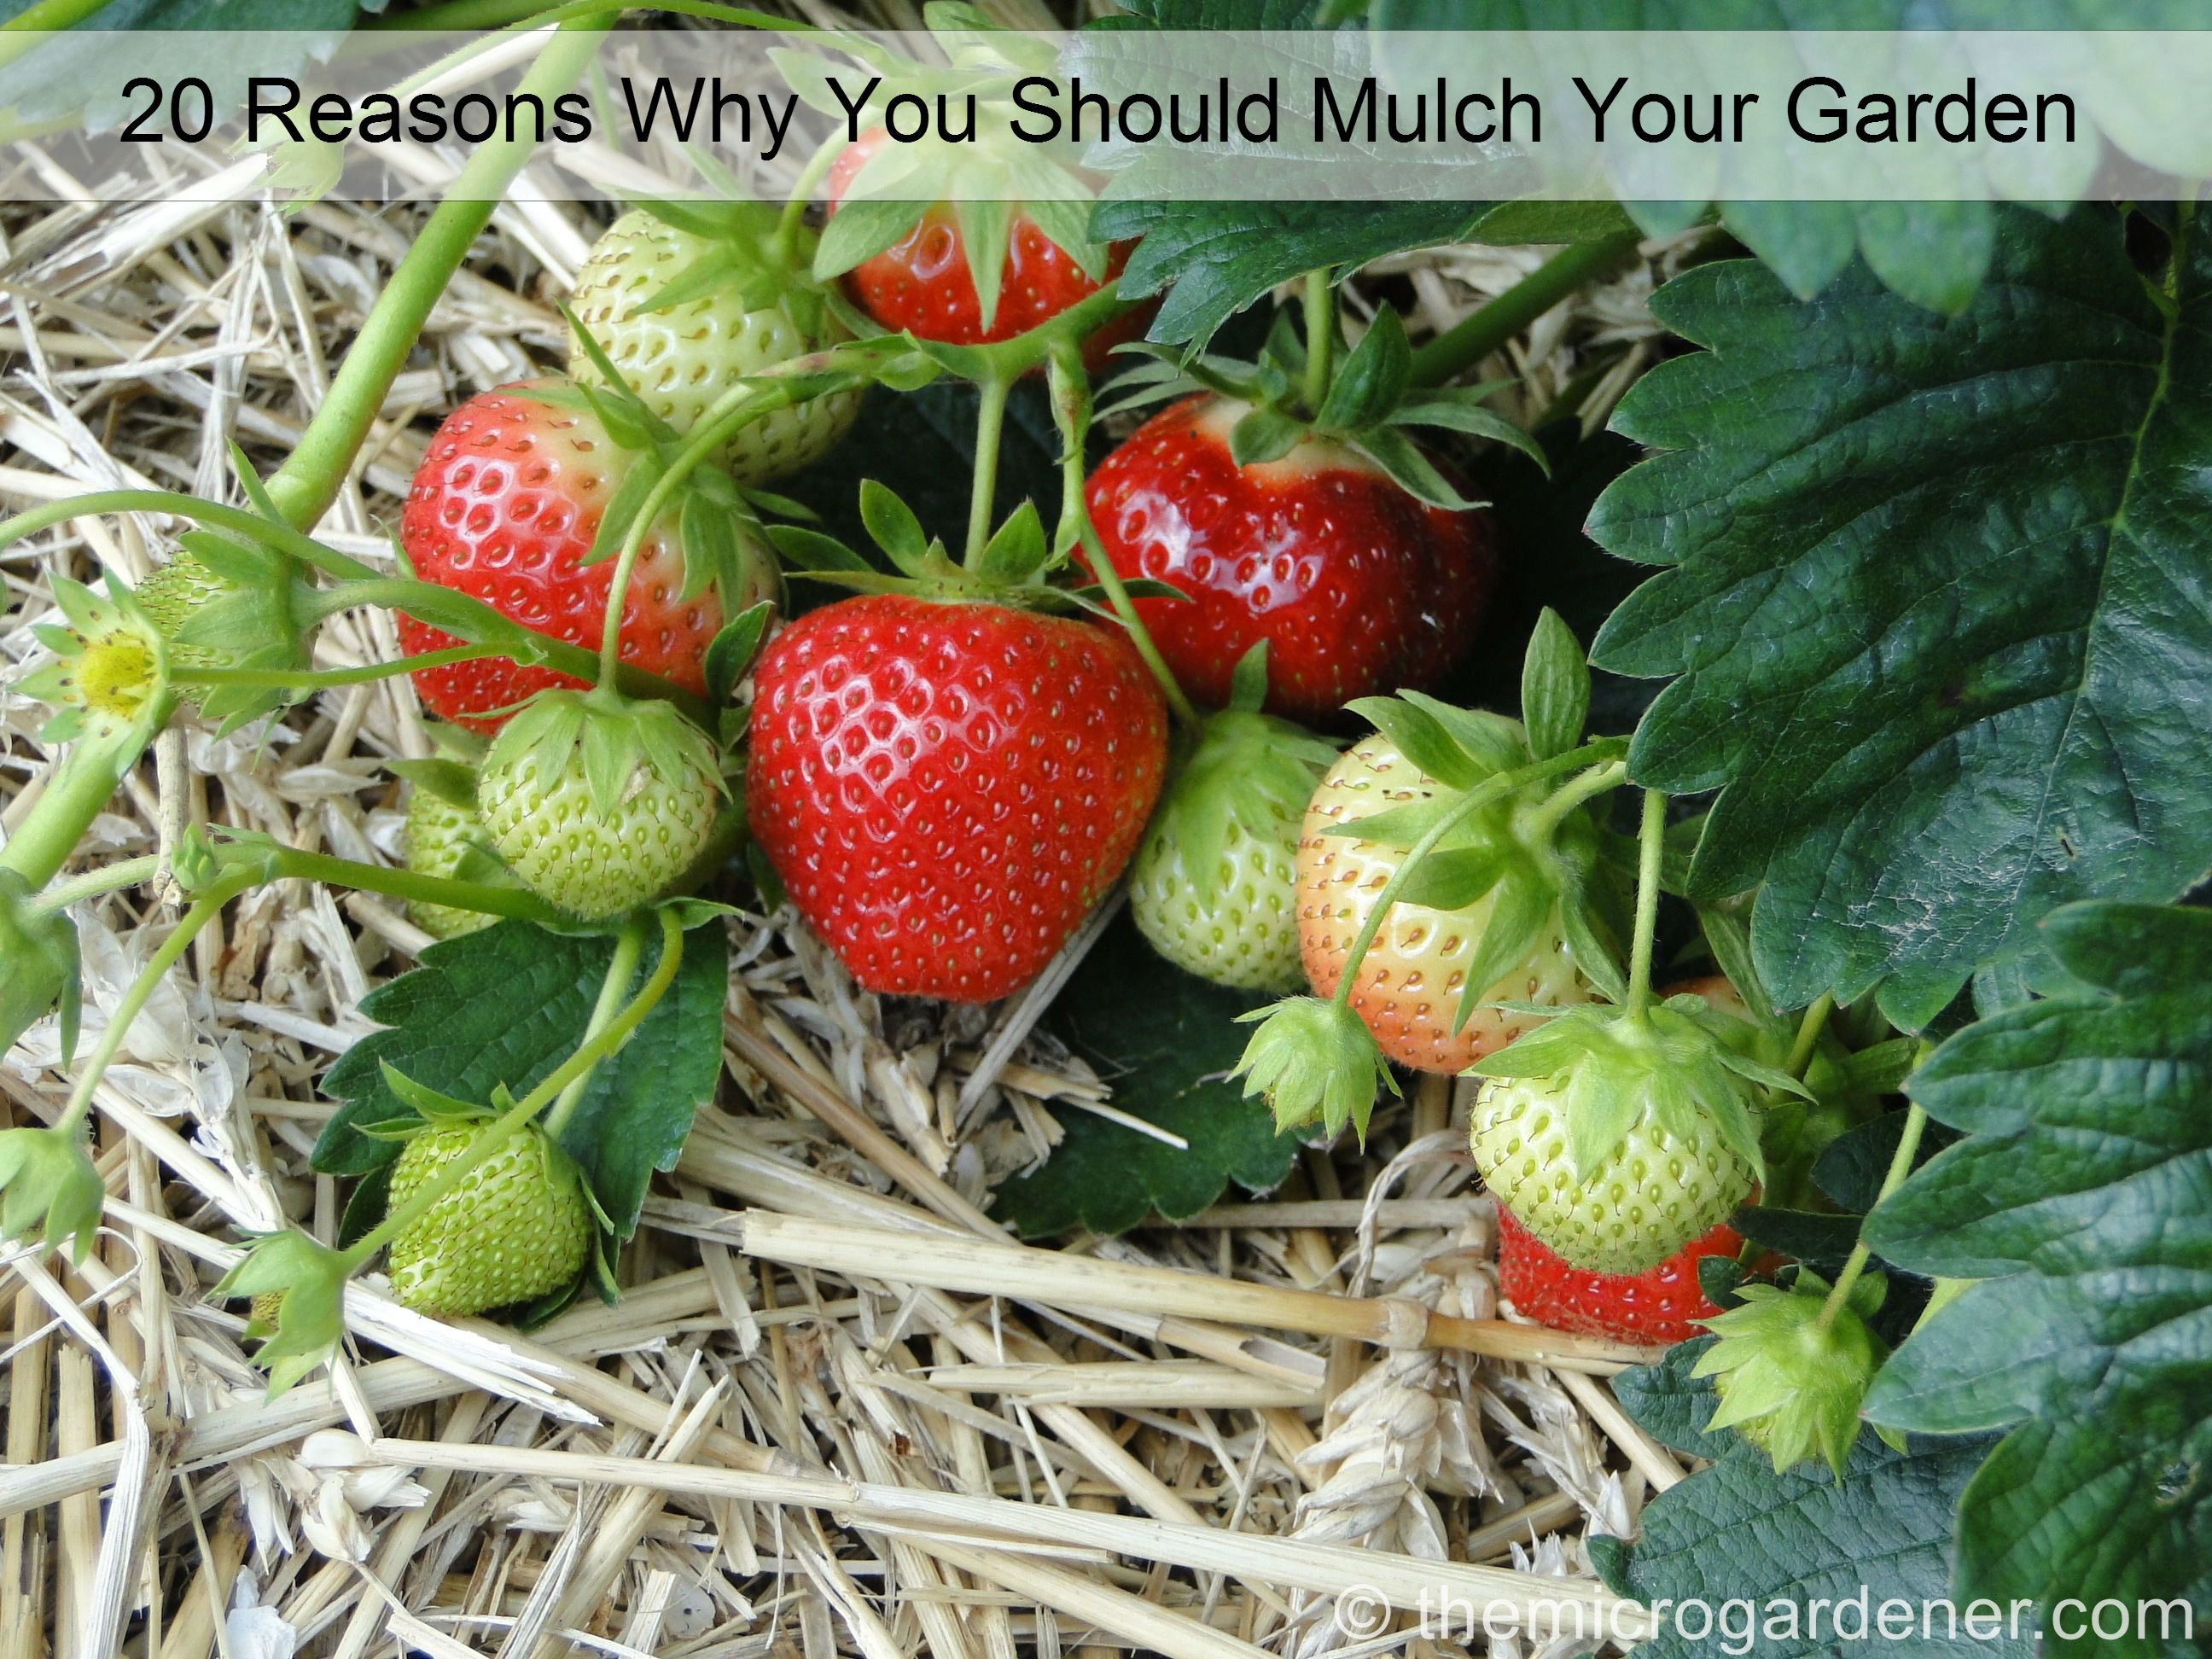 20 reasons why you should mulch your garden - Best compost for flower pots solutions within reach ...